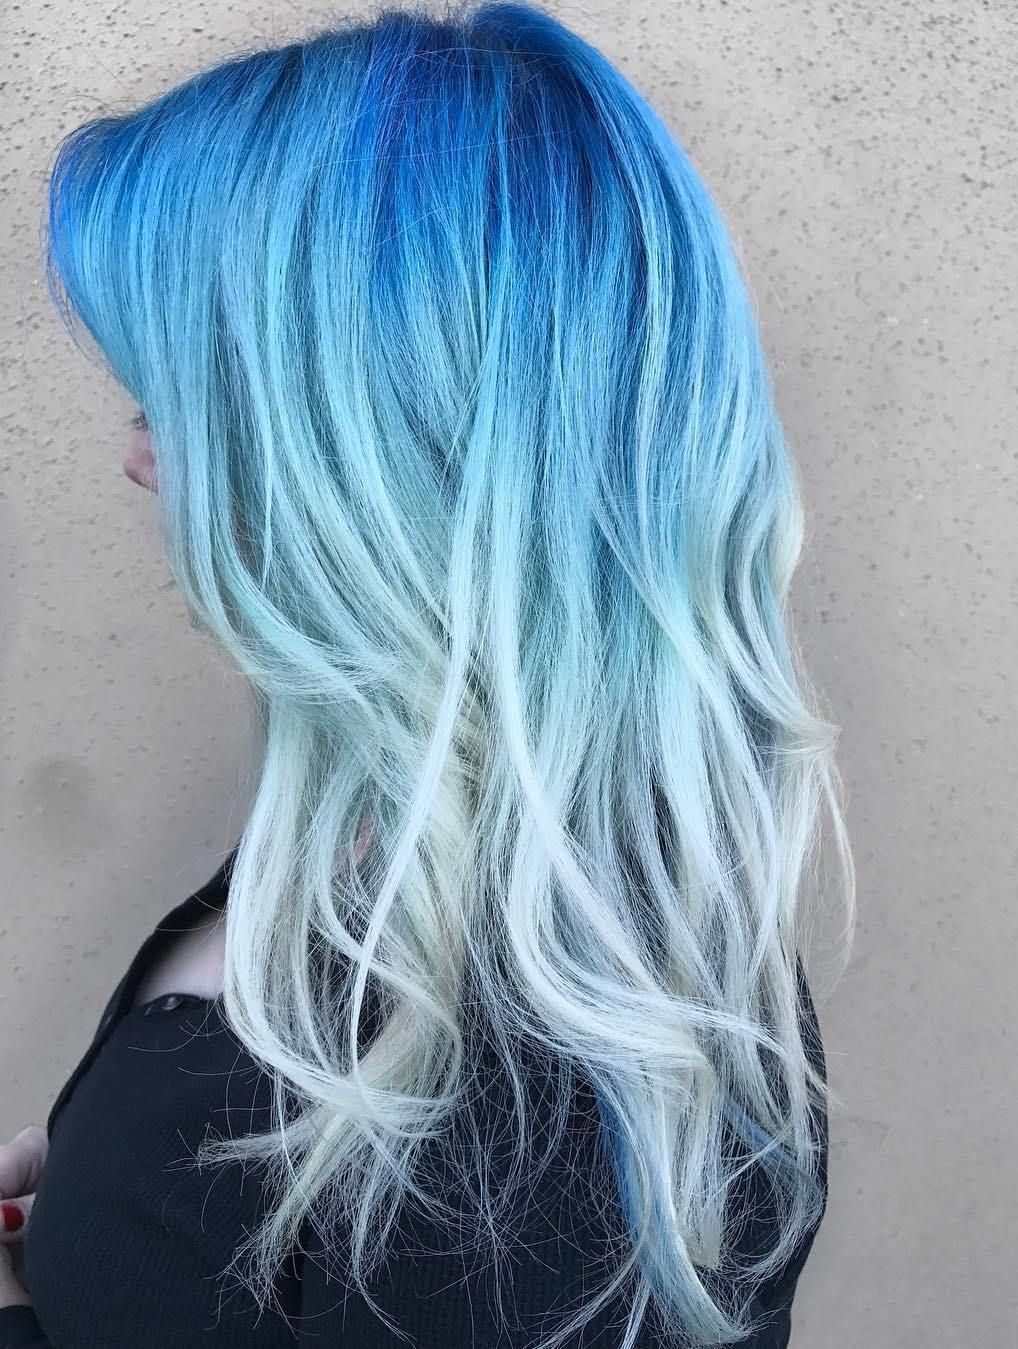 Fashion week Blue and blonde hair ideas photo for woman